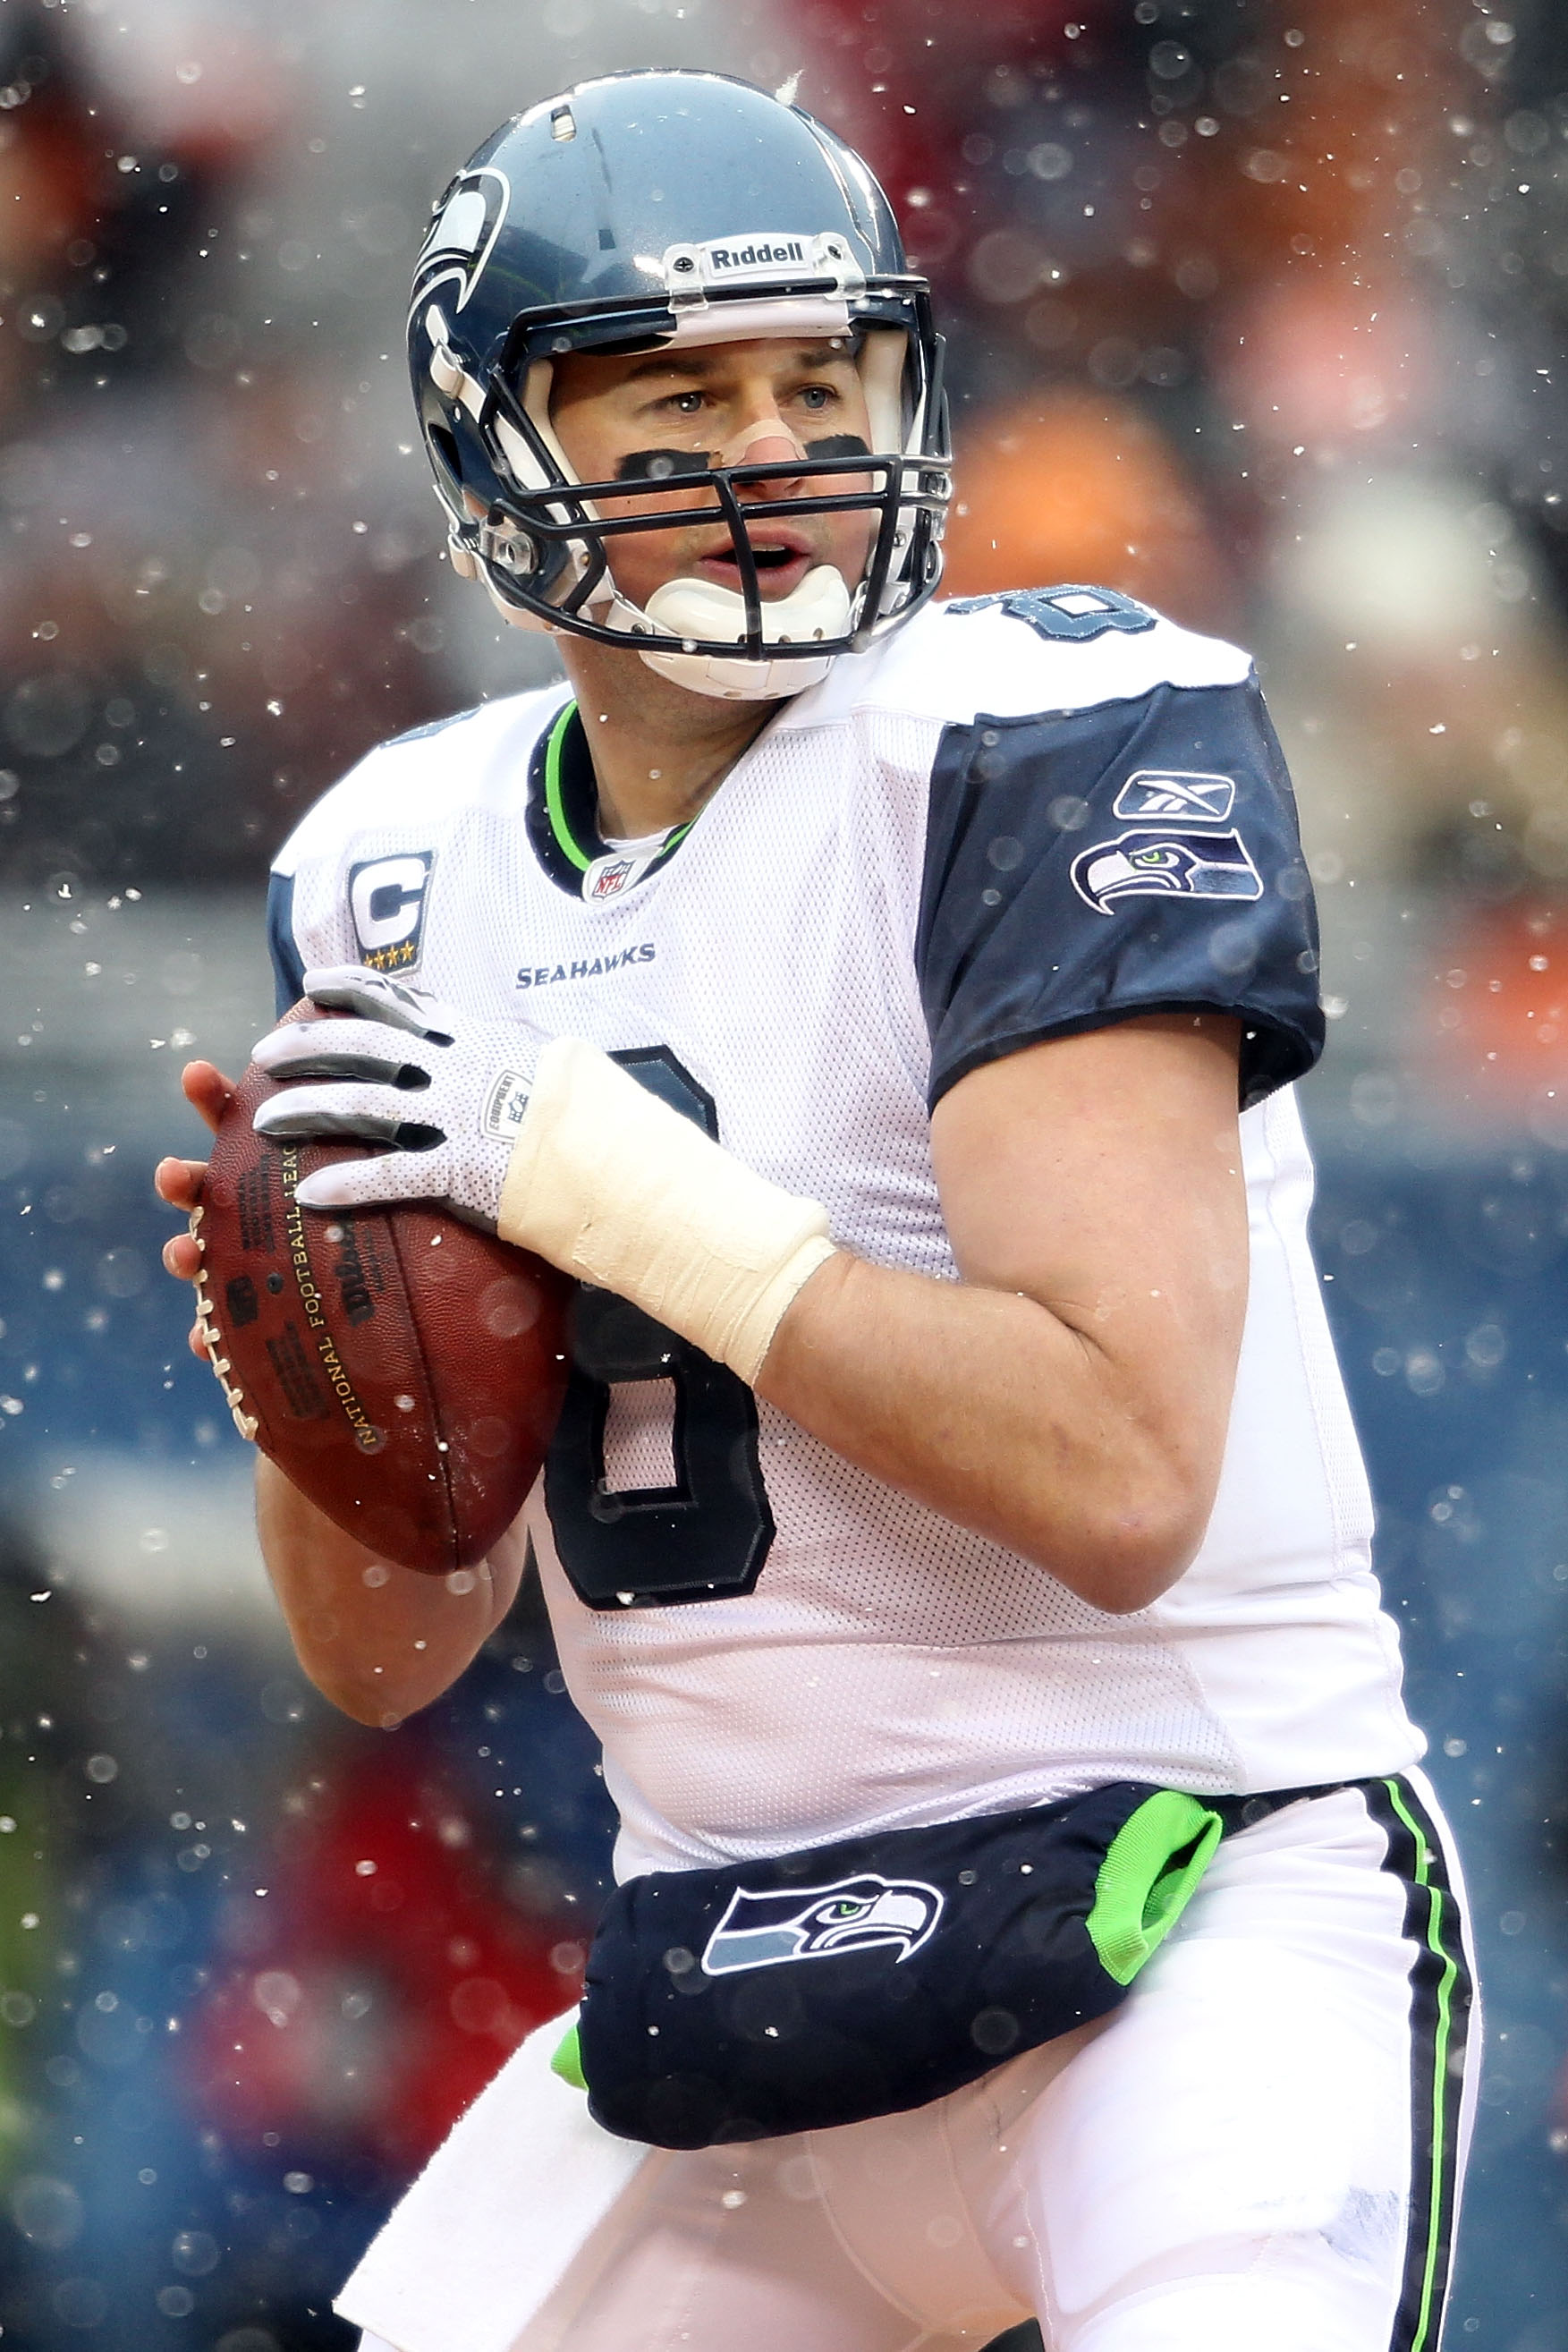 Matt Hasselback has been a Seattle Seahawk most his career, and that shouldn't change even with his expiring contract.